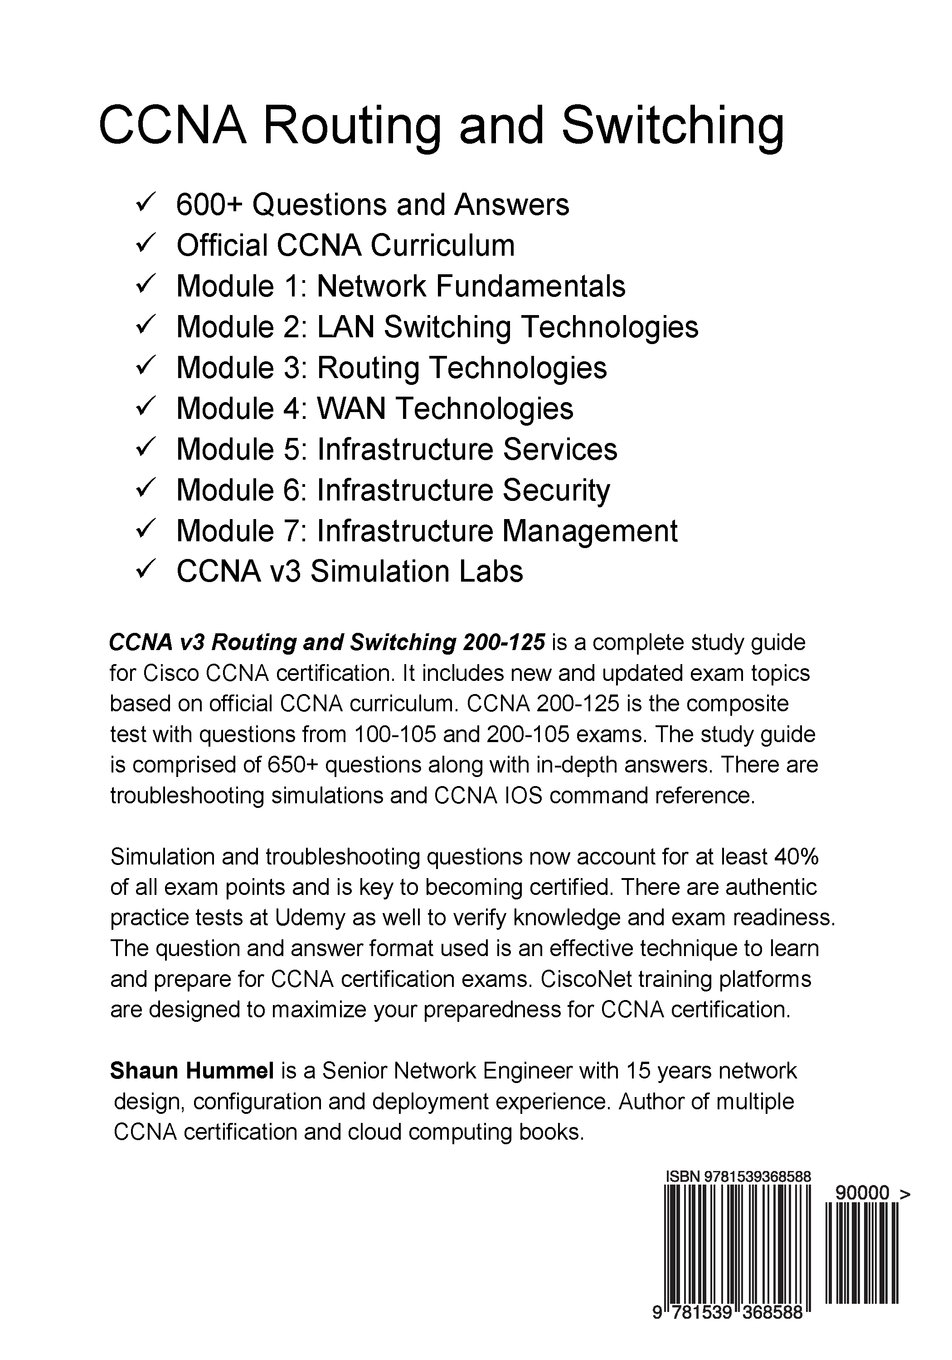 Ccna v3 routing and switching 200 125 certification study guide ccna v3 routing and switching 200 125 certification study guide shaun hummel 9781539368588 amazon books 1betcityfo Gallery